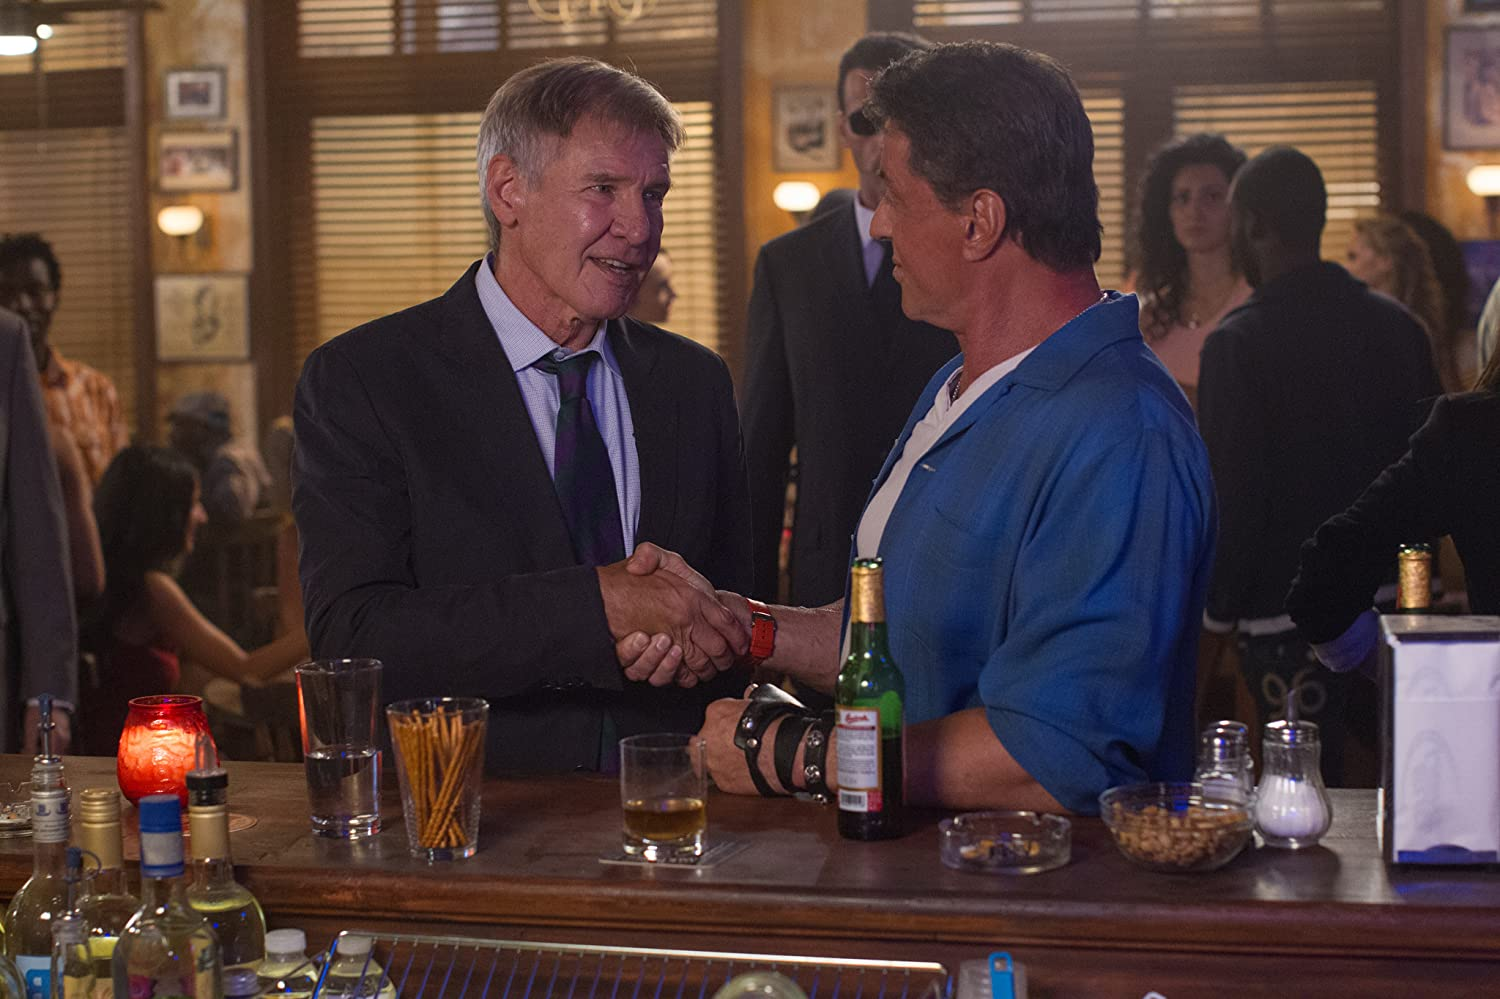 Harrison Ford and Sylvester Stallone in The Expendables 3 (2014)